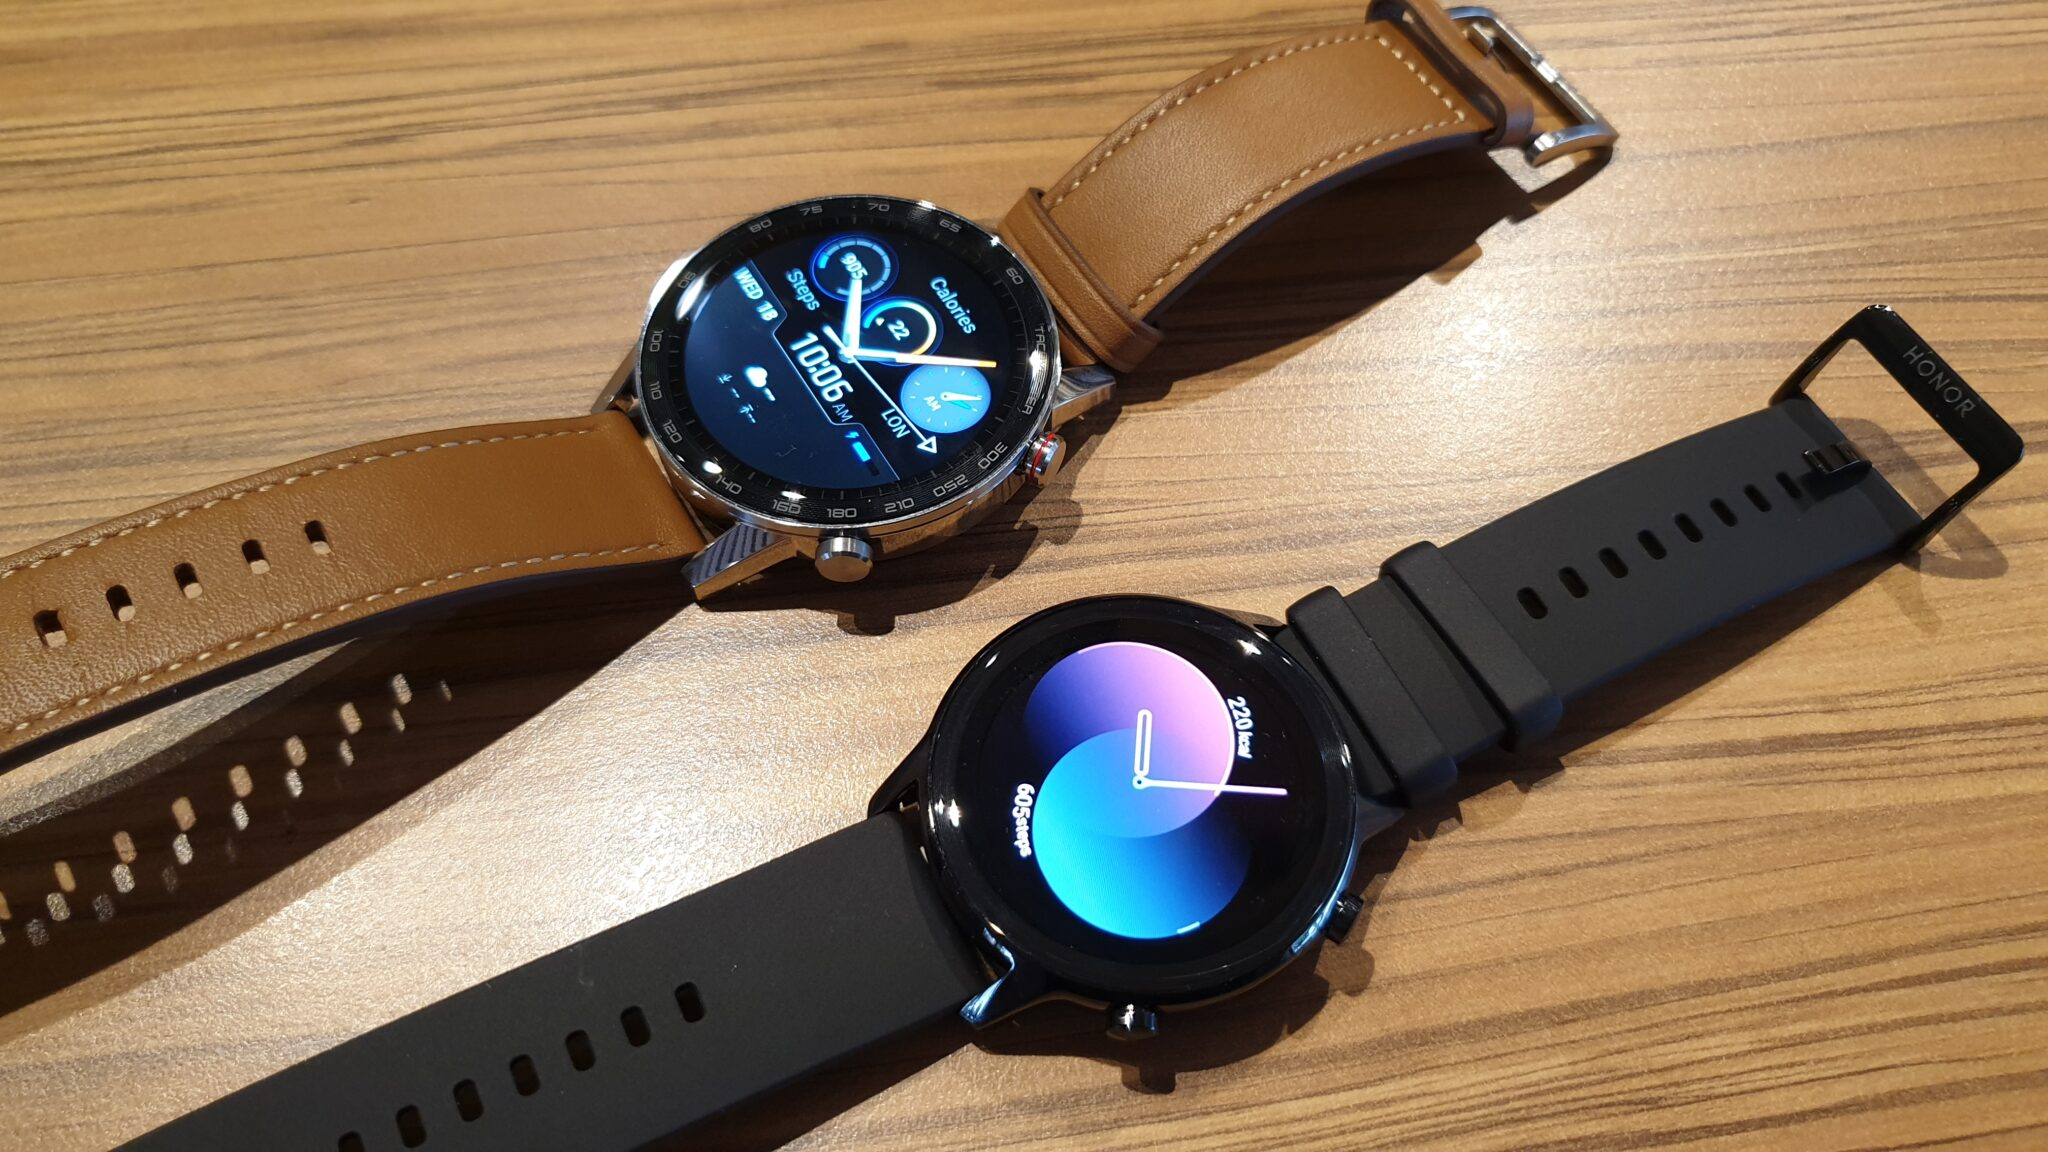 HONOR MagicWatch 2 top